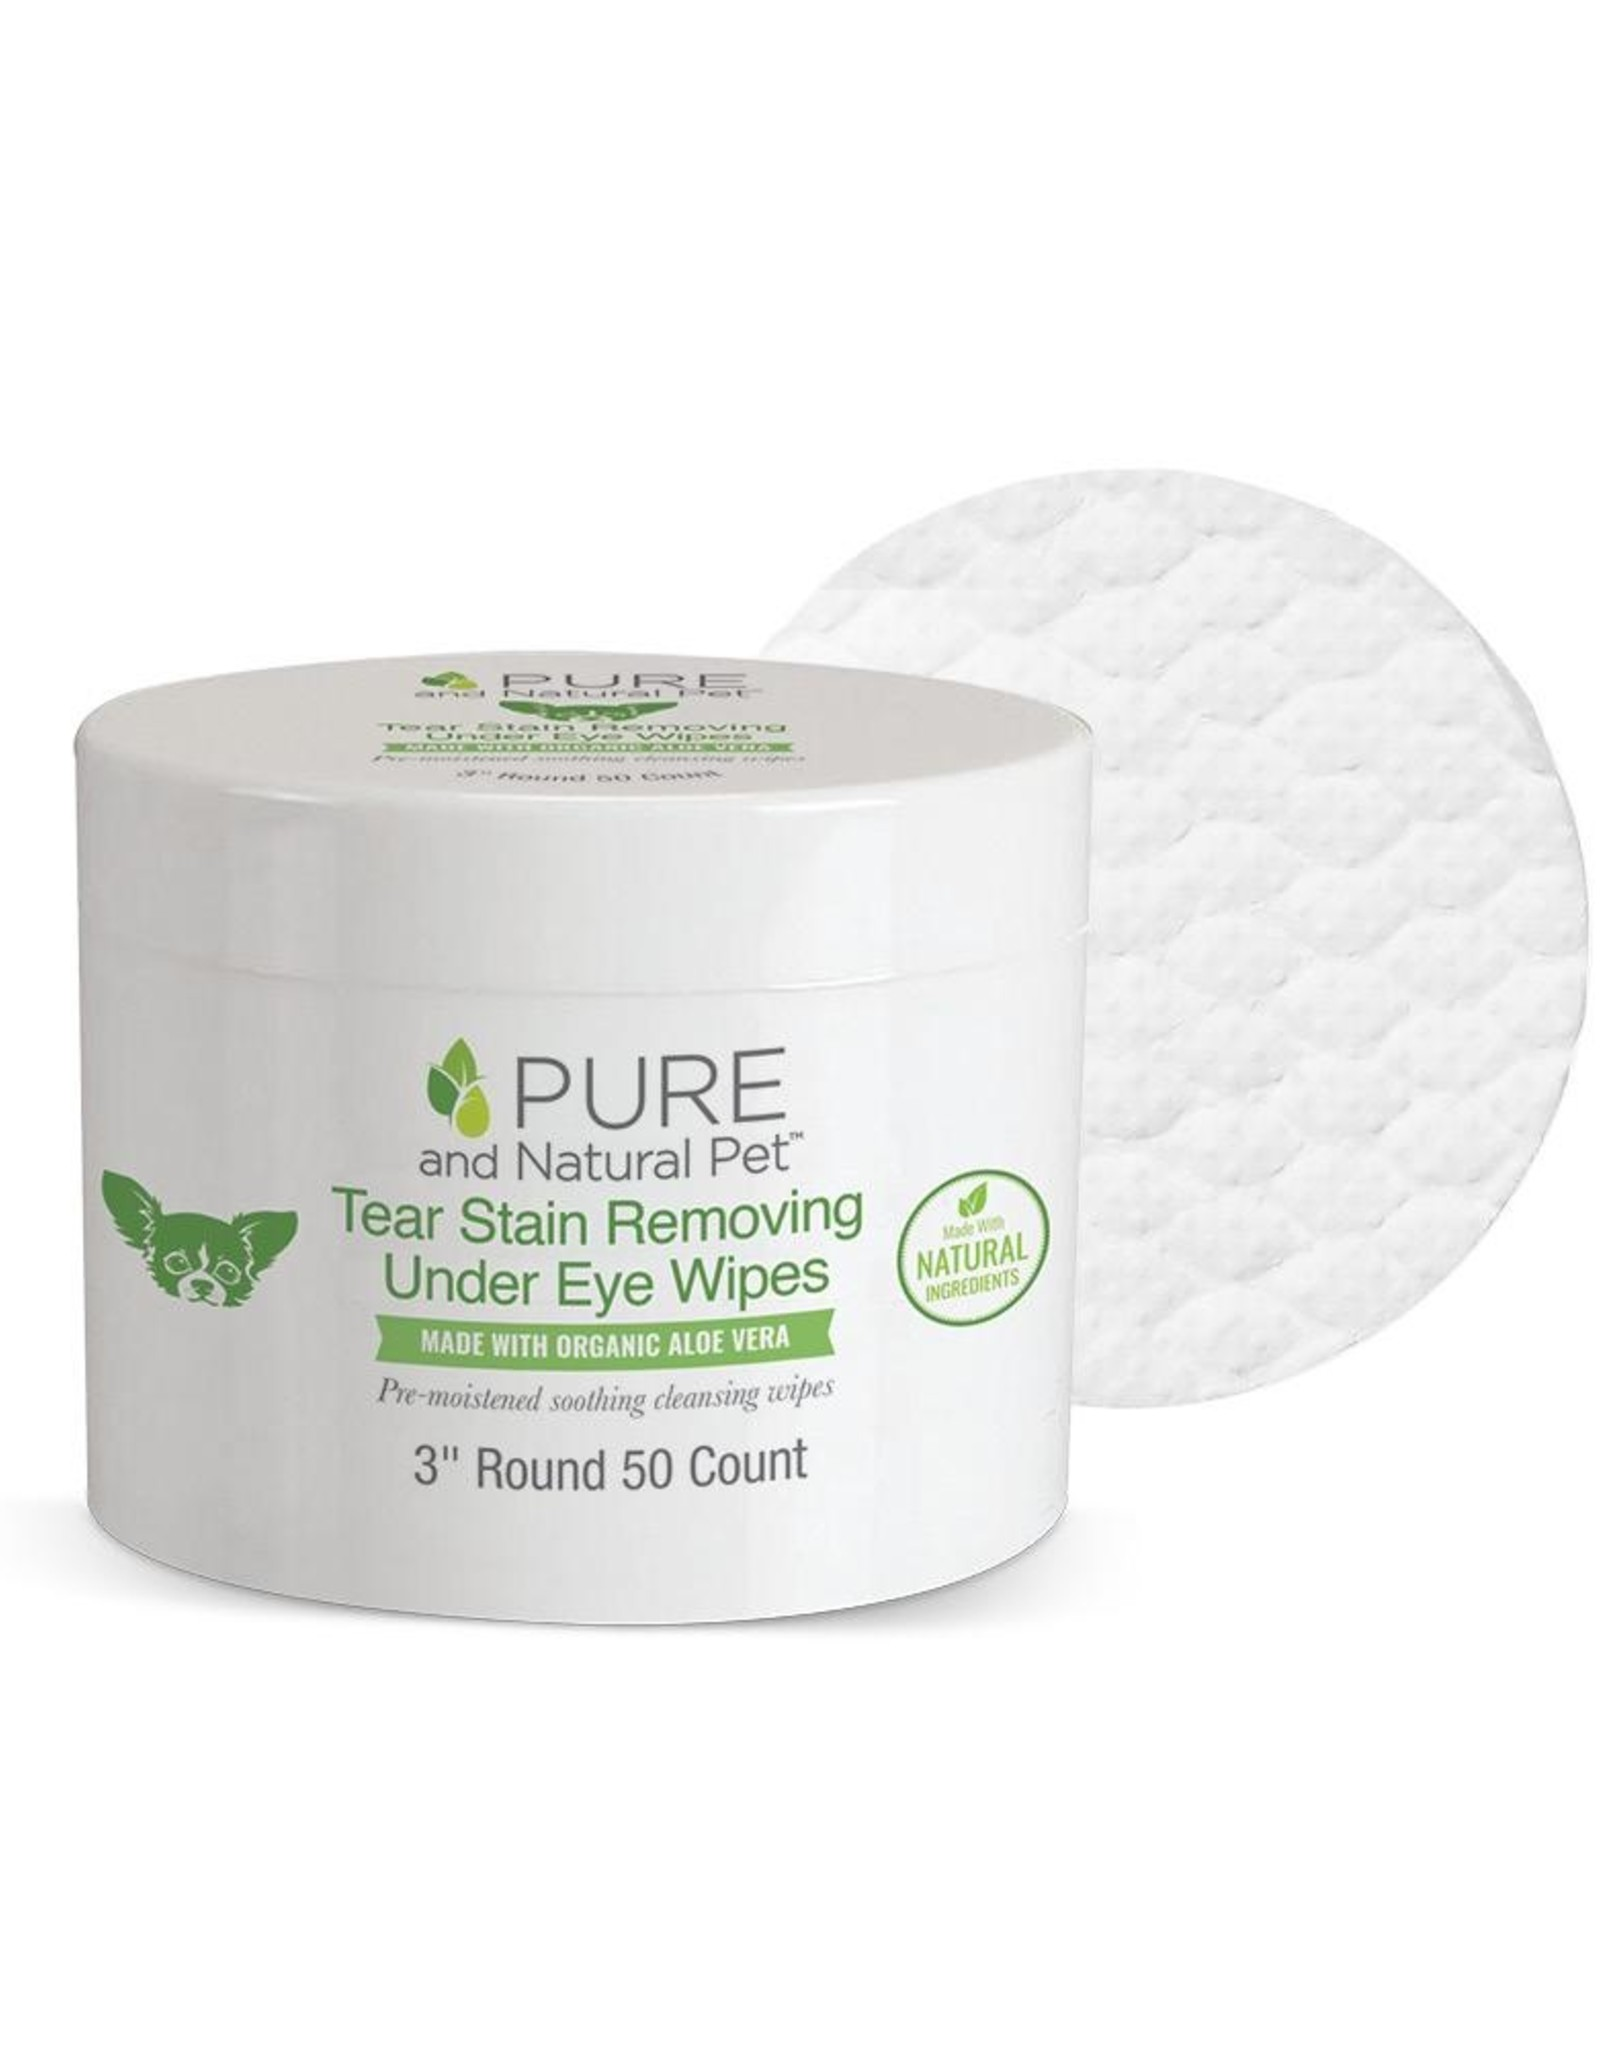 Pure and Natural Pet Tear Stain Removing Under Eye Wipes